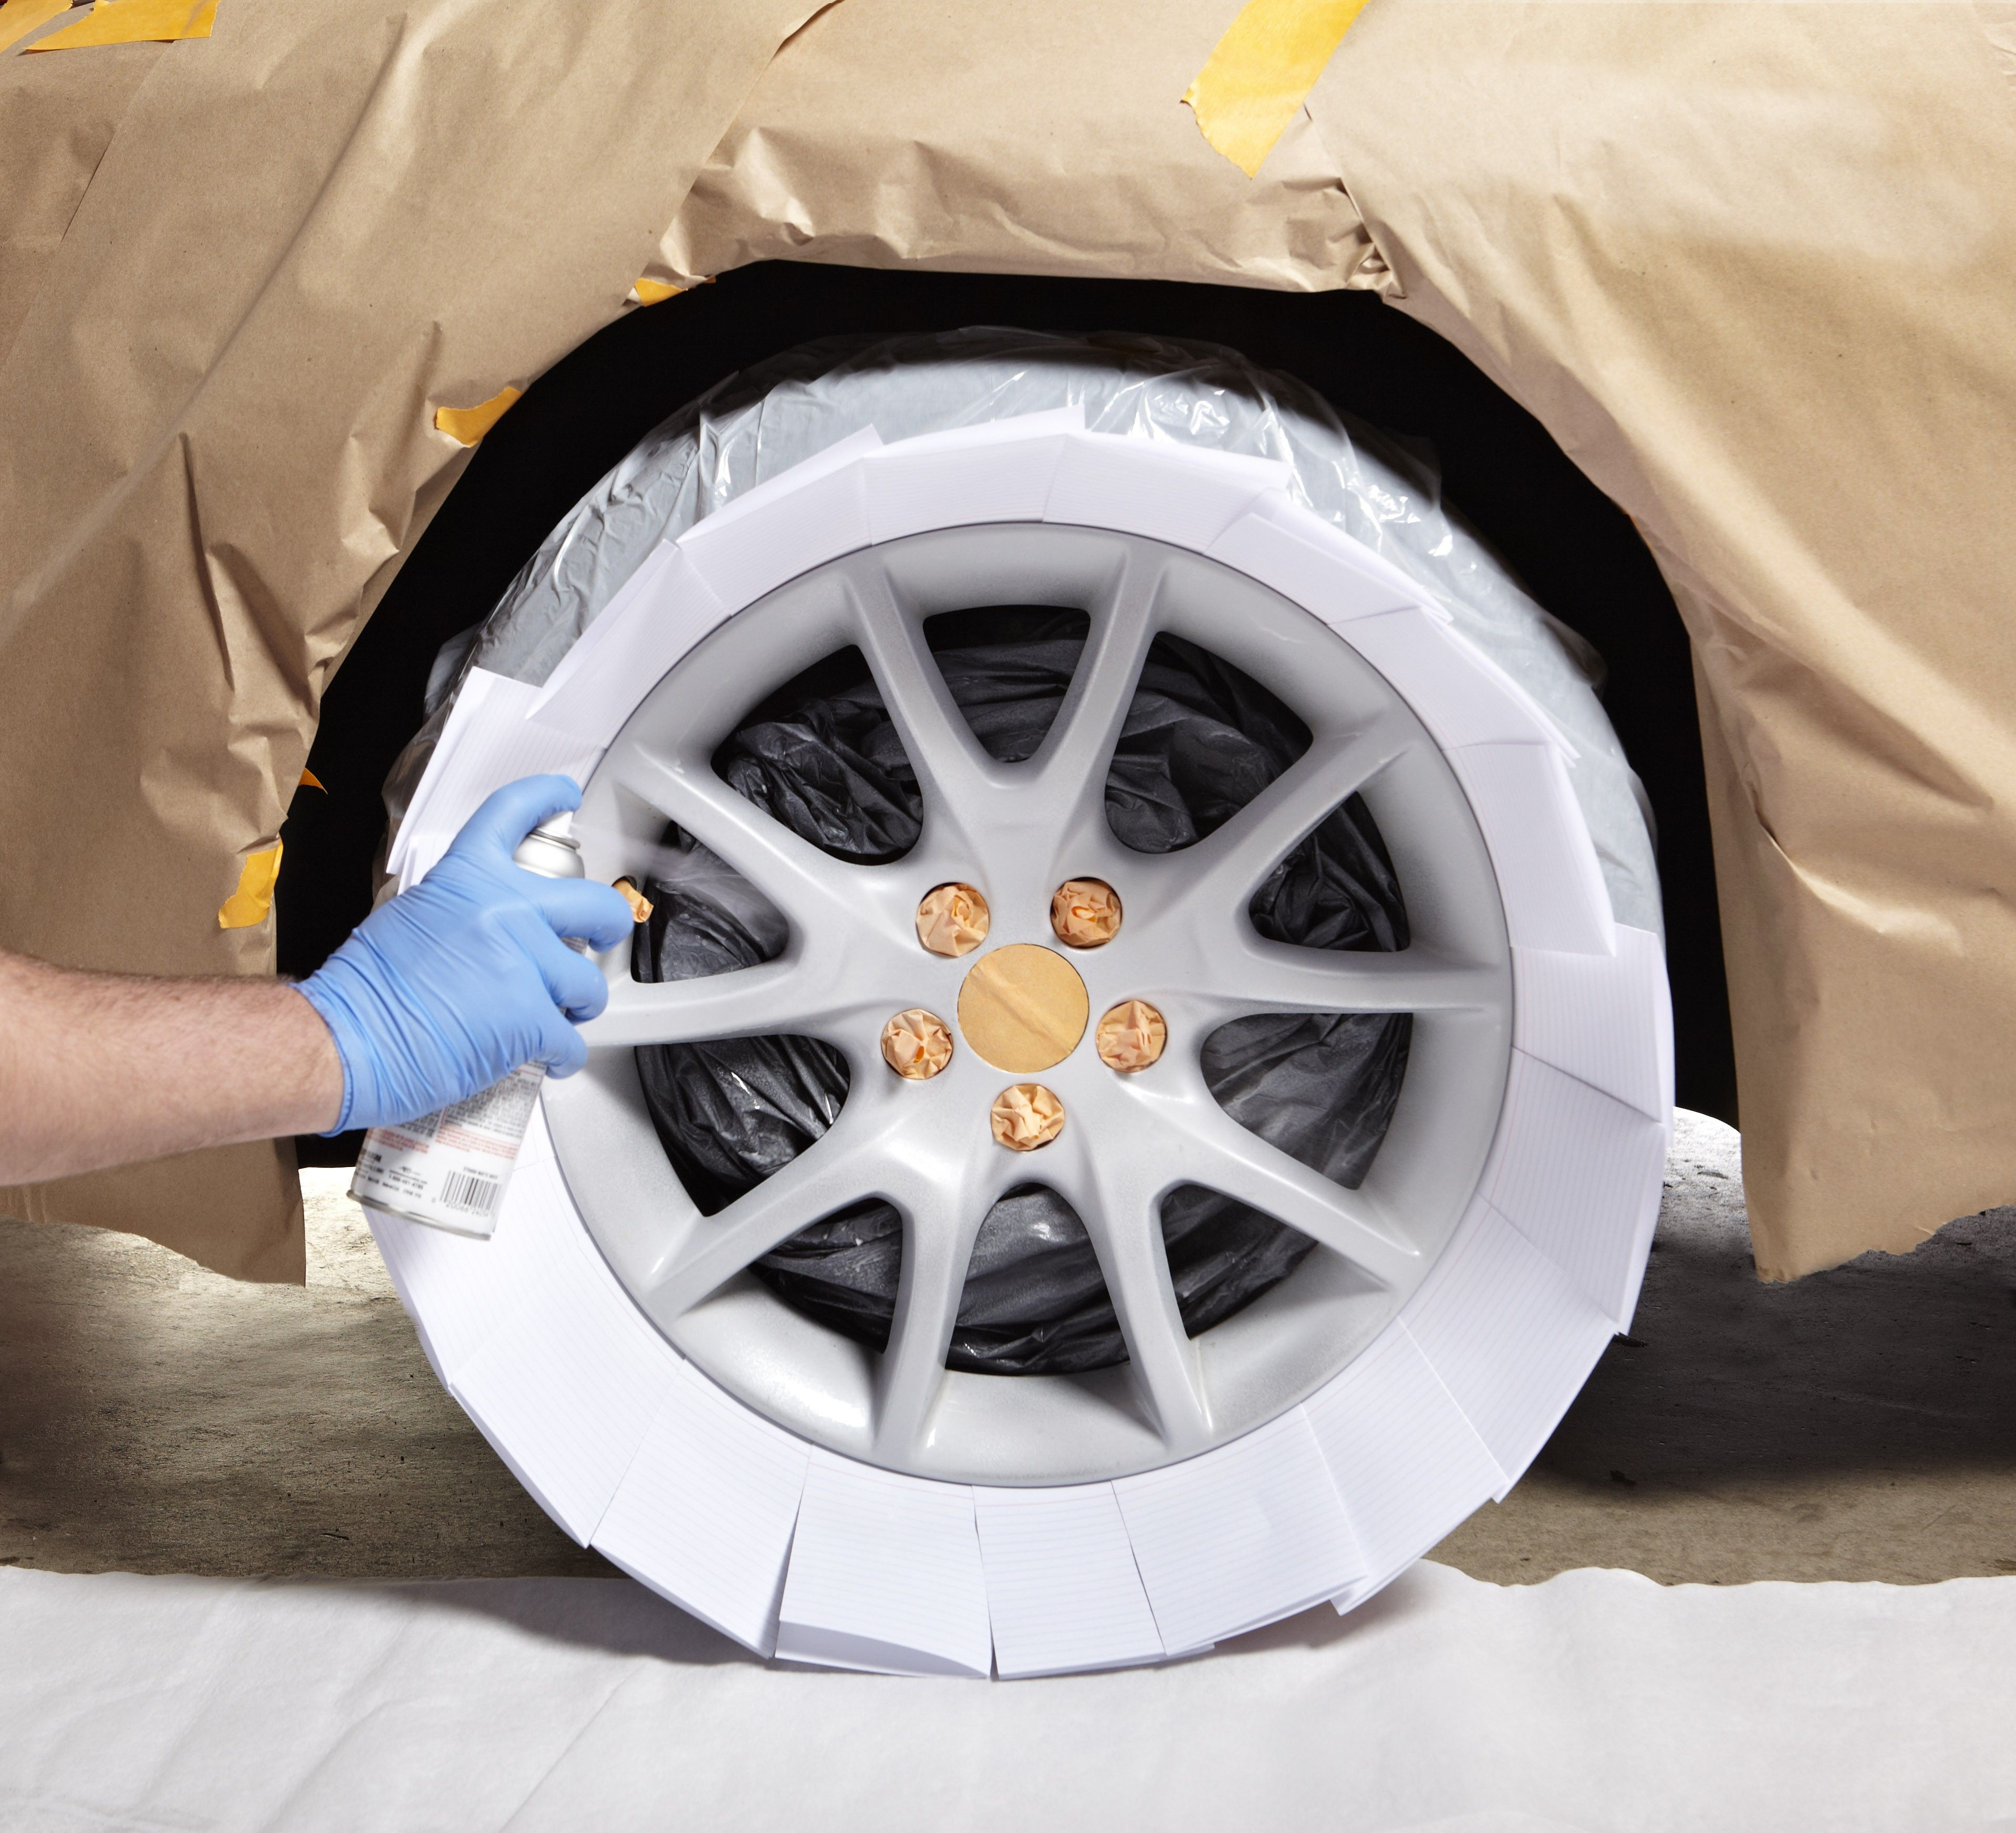 Give Your Car Rims A Sleek Silver Look With Peel